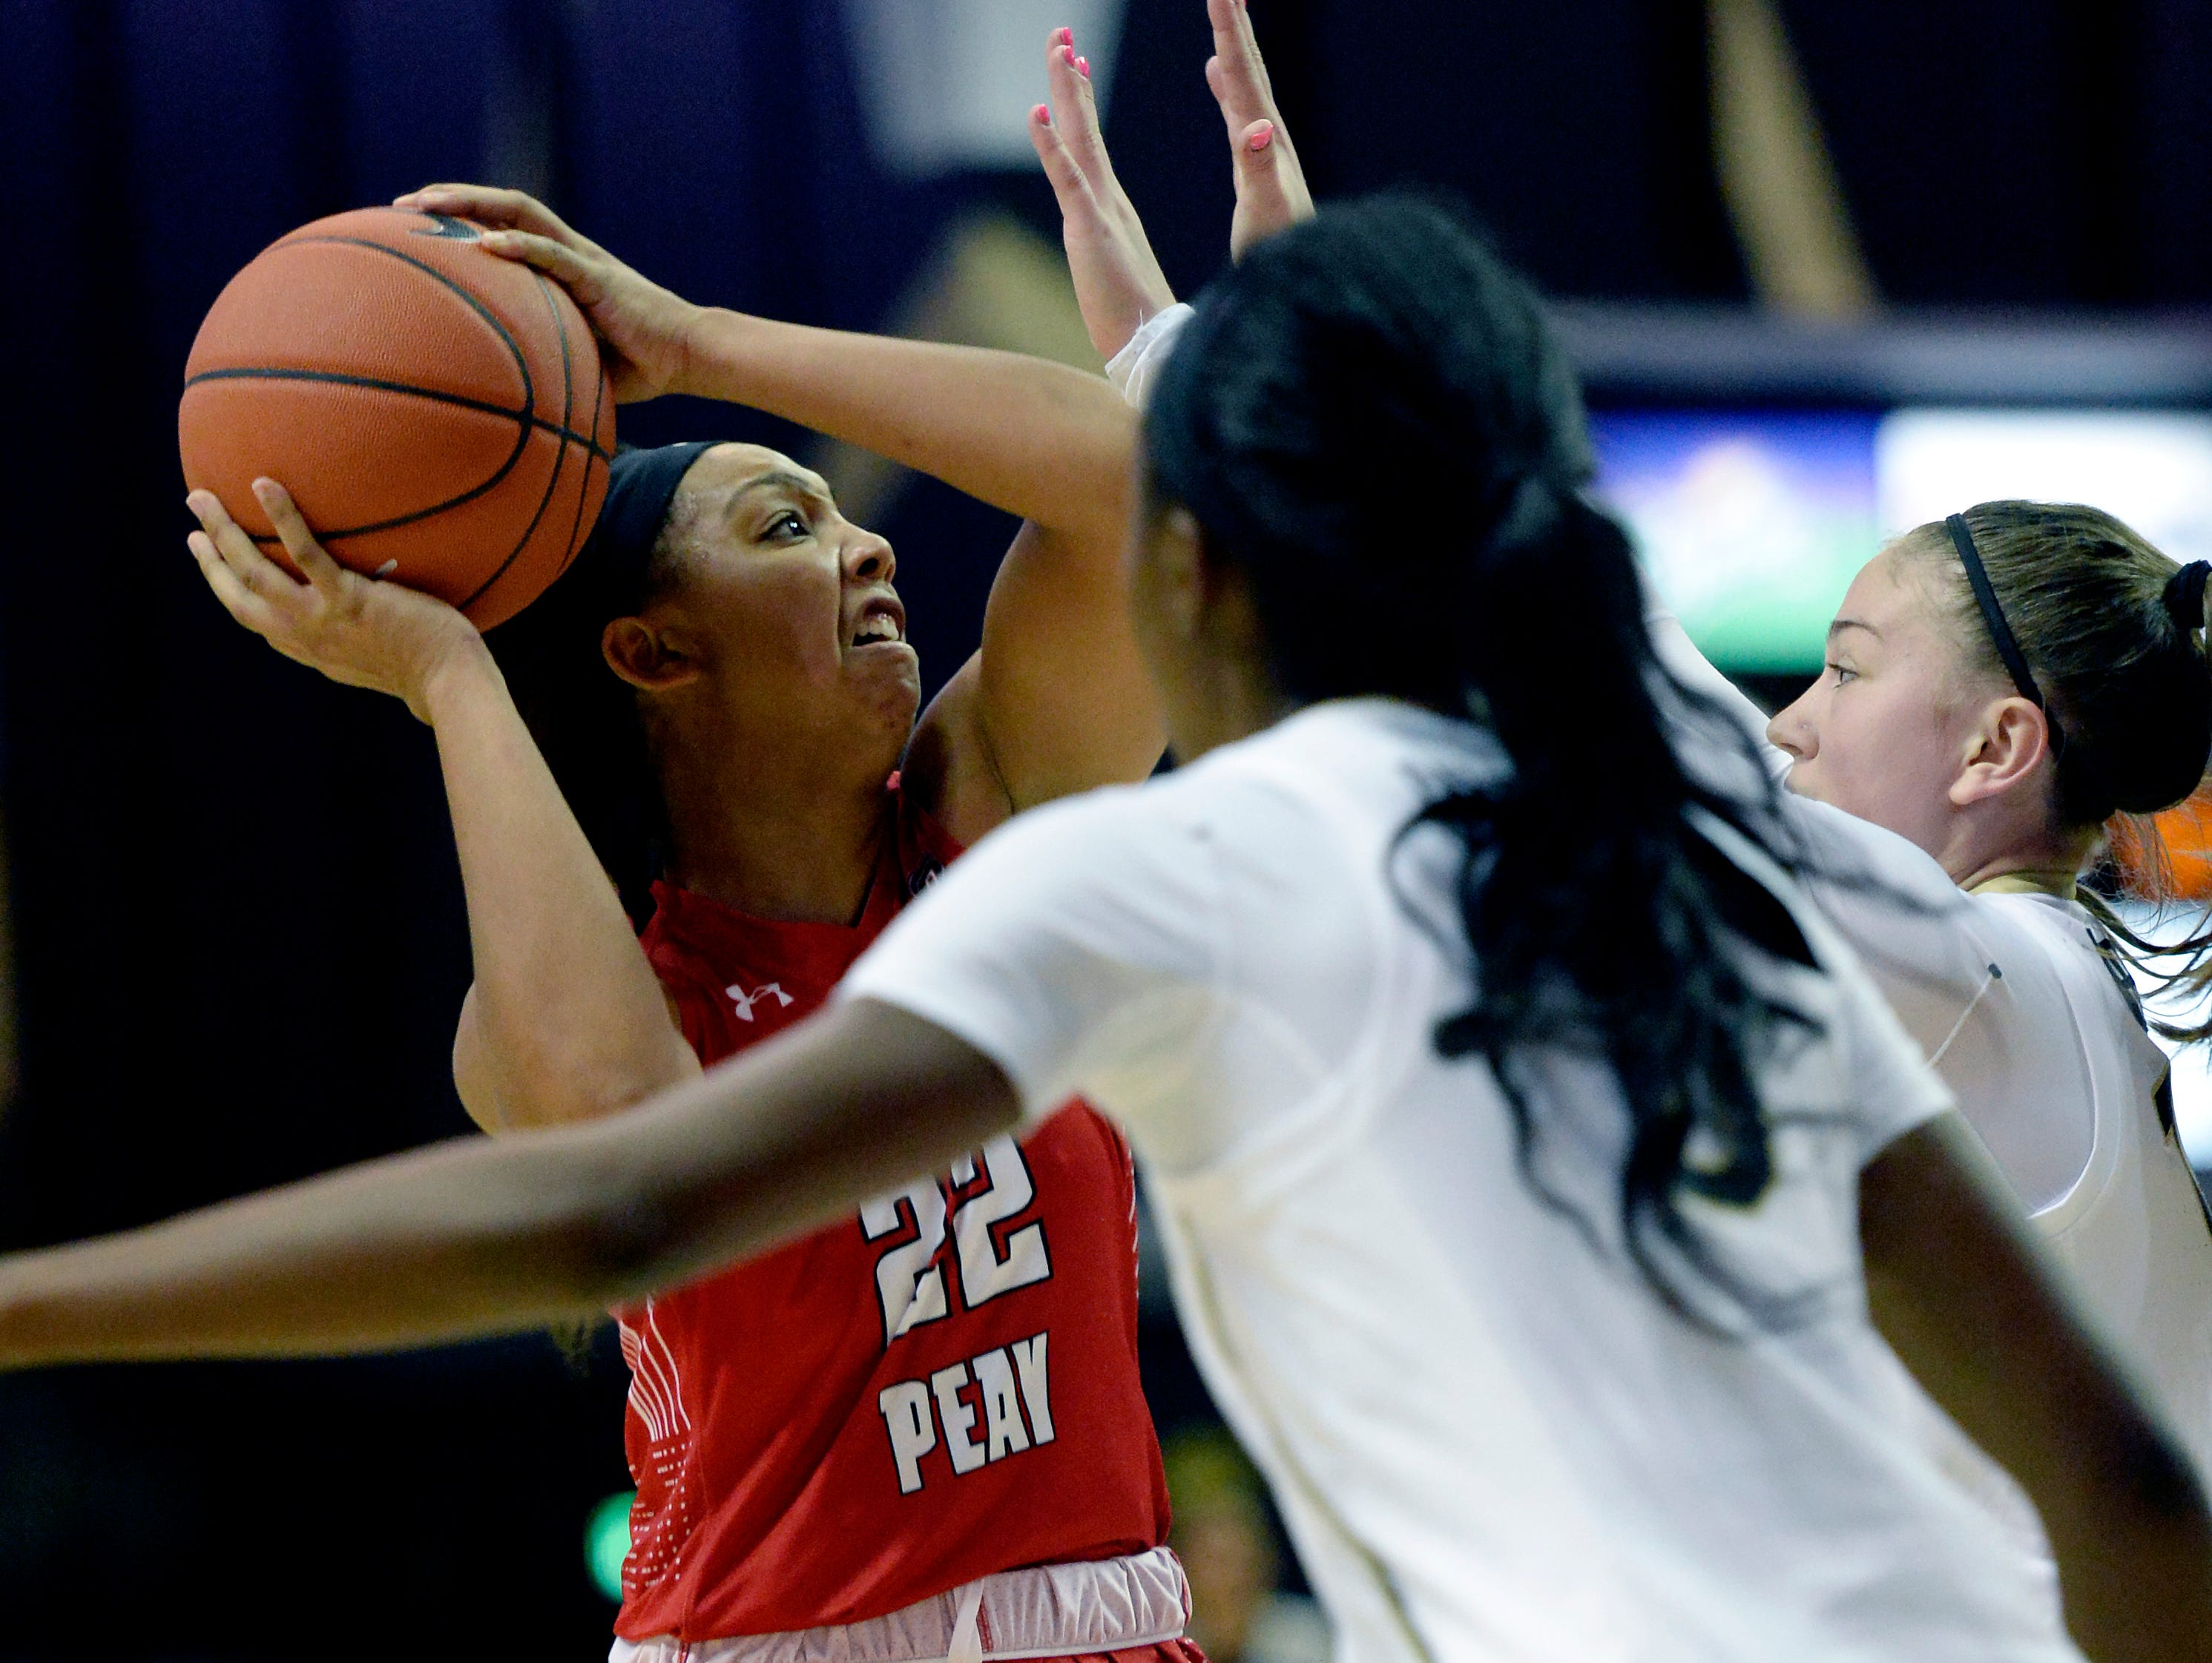 Austin Peay guard Keisha Gregory (22) looks to pass as she is defended Vanderbilt guard Cierra Walker, right, during the second half of an NCAA college basketball game Monday, Nov. 12, 2018, in Nashville, Tenn. Vanderbilt won 99-70.